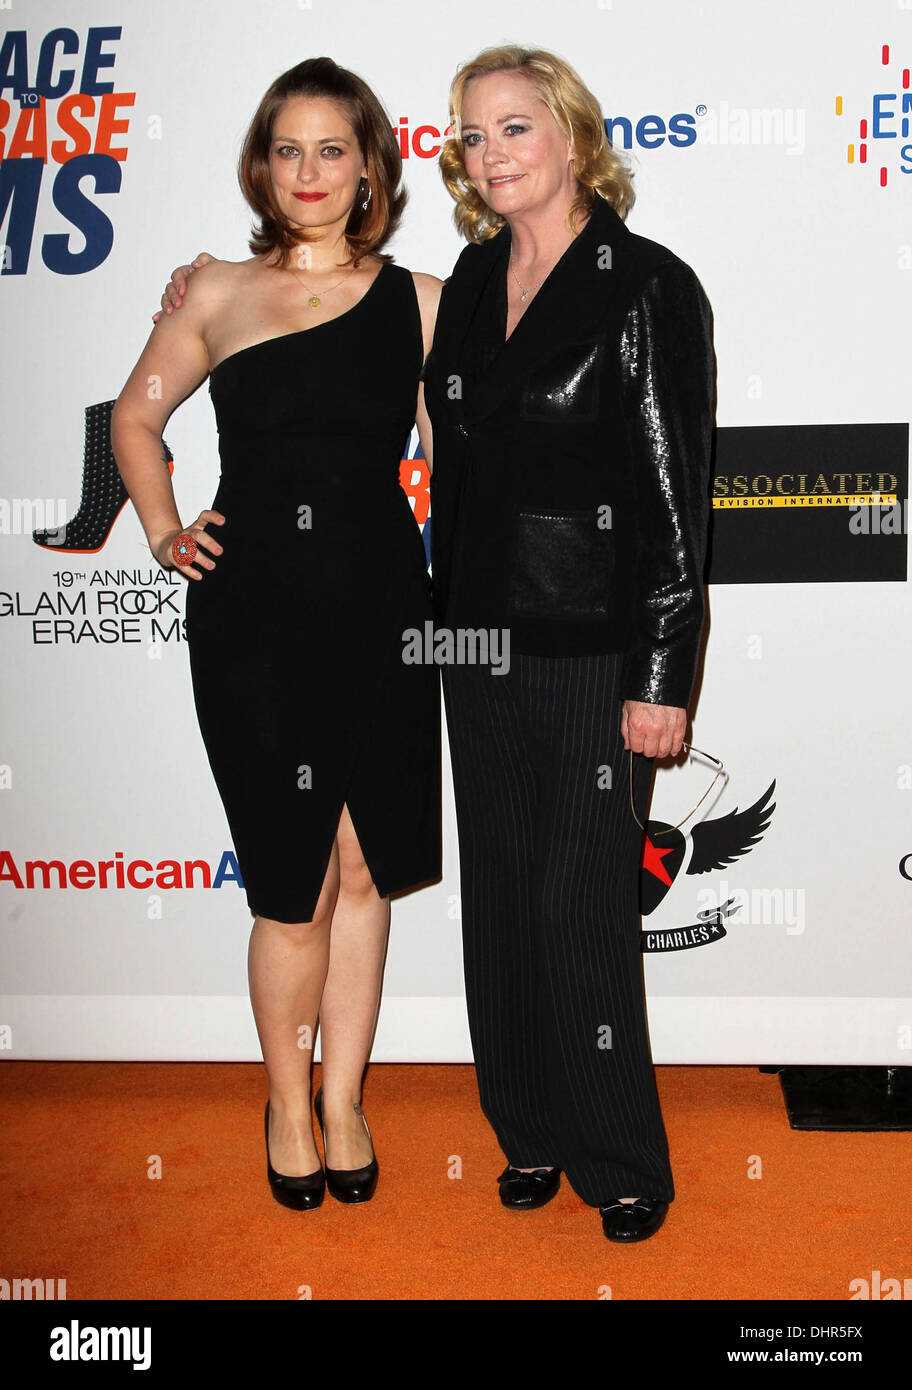 cybill shepherd and clementine ford stock photos amp cybill